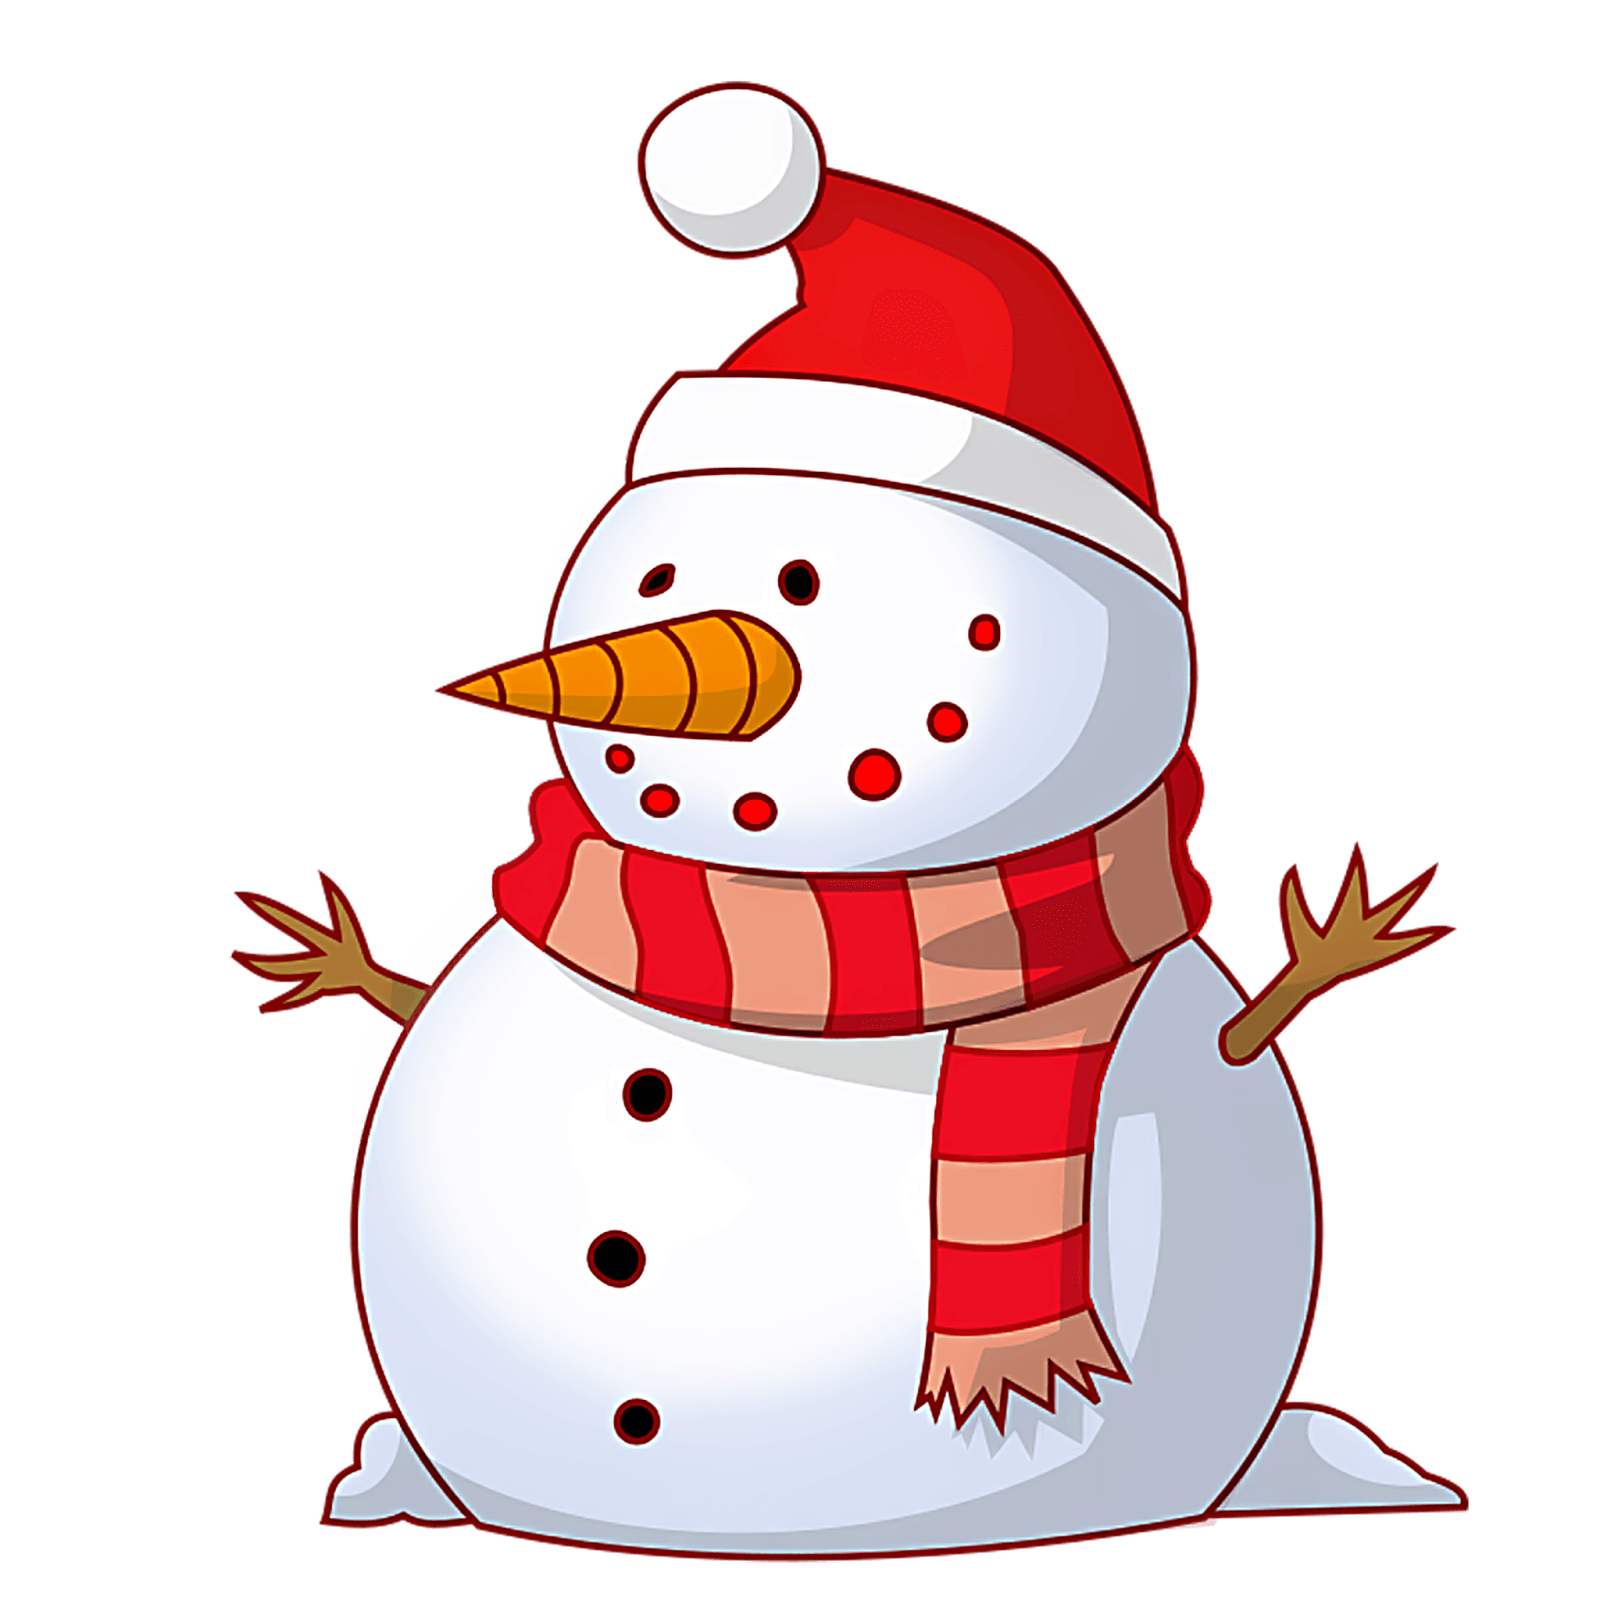 Snowman at getdrawings com. Olaf clipart beach